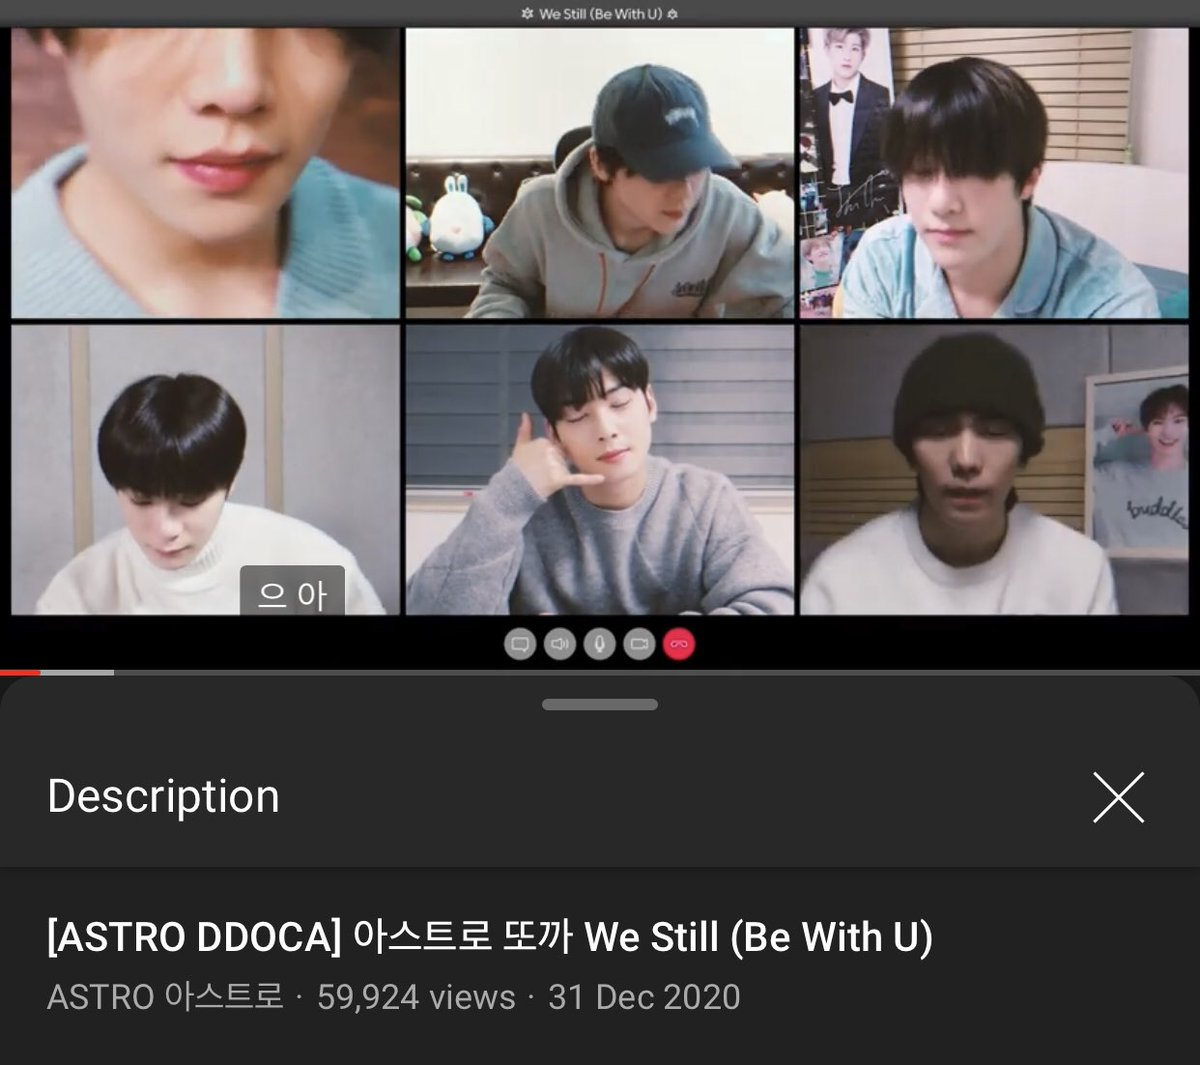 [📈] 201231 11:45 PM KST 'We Still (Be With U)' DDOCA Official Channel: 59,924 views (🔺6,621) 🔗youtu.be/zyk2KpV6avk Naver TV: 49,021 views (🔺2,893) 🔗naver.me/FVPwMoN9 [ #아스트로 #ASTRO_BeWithU @offclASTRO ]